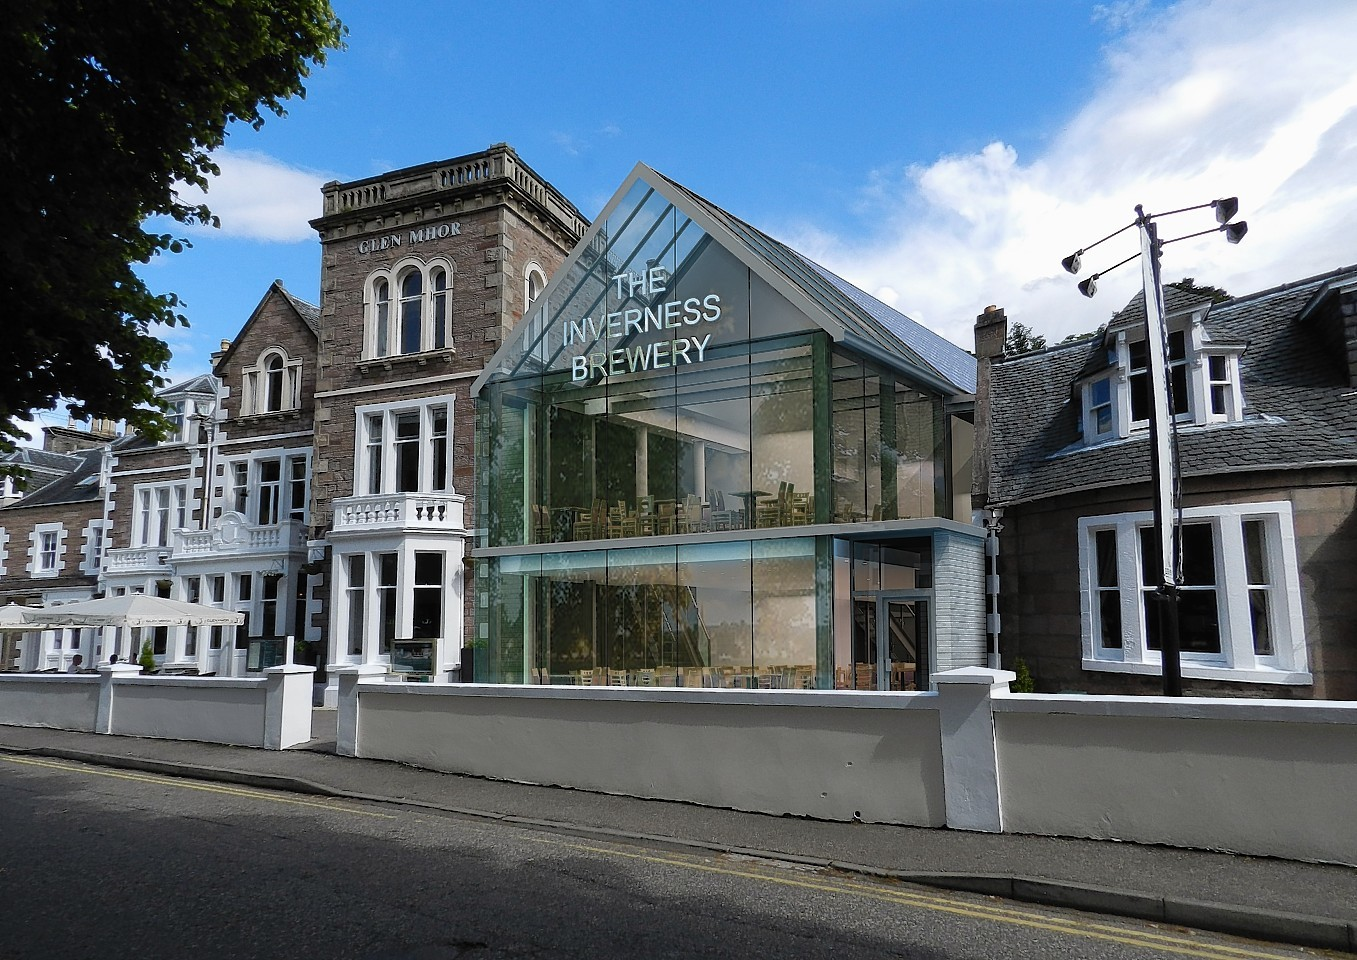 Inverness councillors will next week consider a revised planning application for a micro brewery at the Glen Mhor Hotel on Ness Bank.